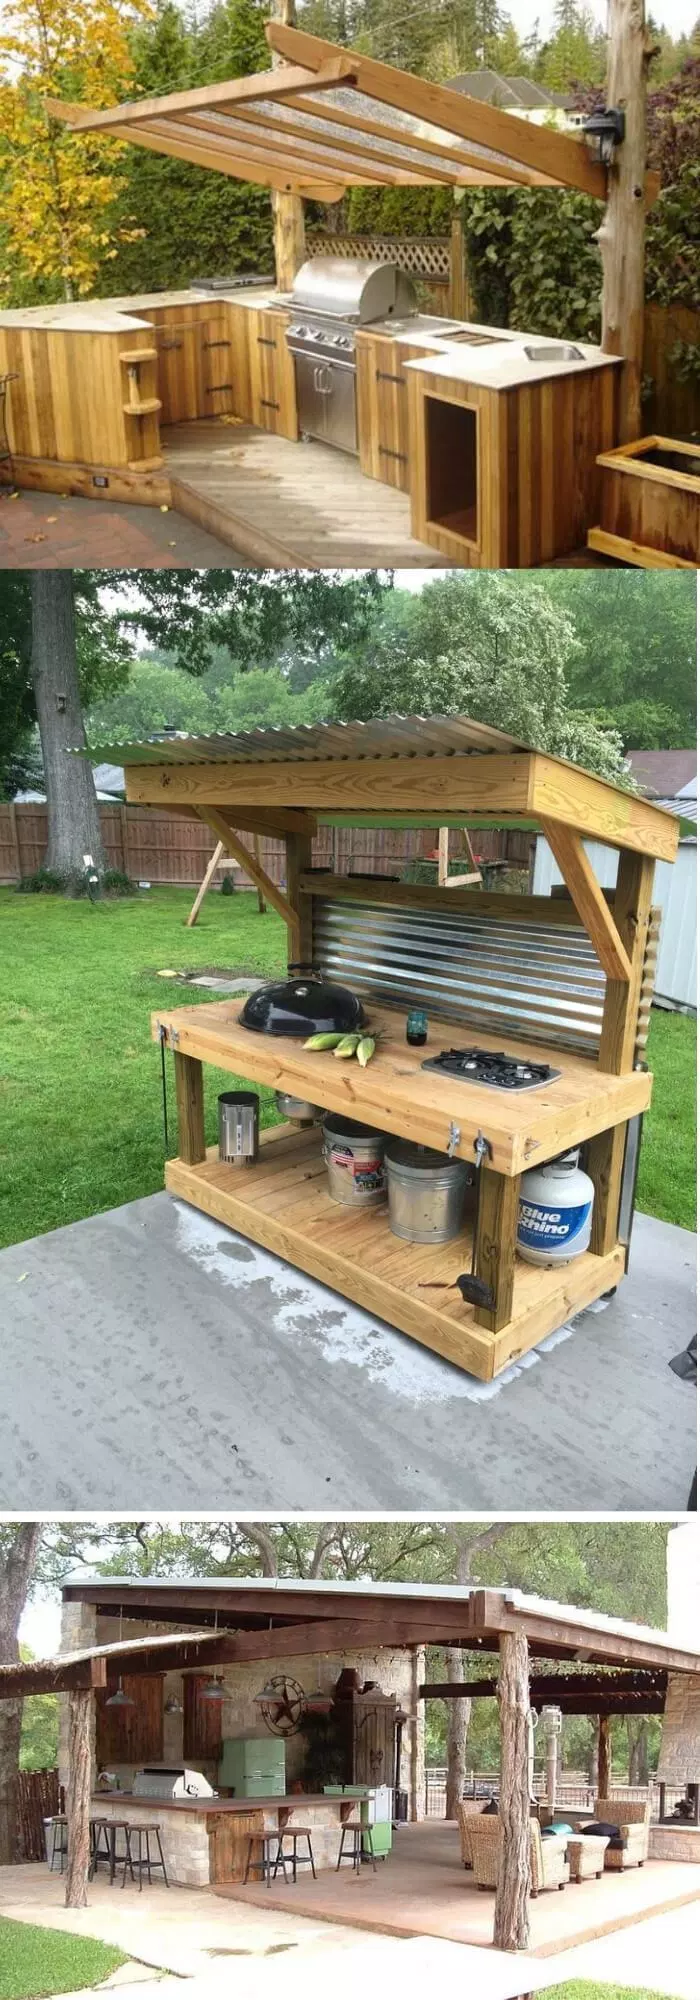 31+ Stunning Outdoor Kitchen Ideas & Designs (With Pictures) For 2020